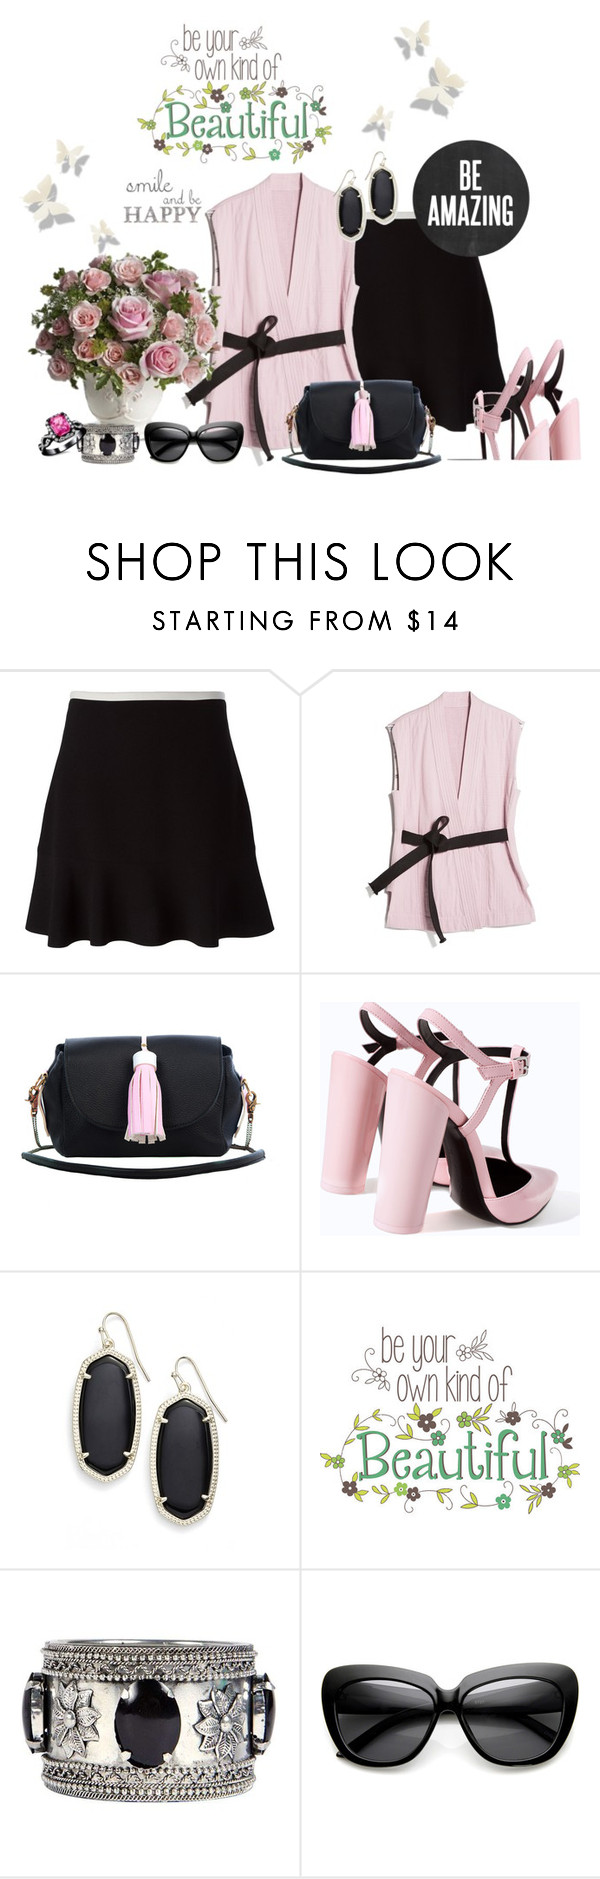 """""""Smile and Be Happy, Sweet Friends !!"""" by fashiongirl-26 ❤ liked on Polyvore featuring See by Chloé, MANGO, Lubochka, Zara, Kendra Scott, Brewster Home Fashions and Boohoo"""